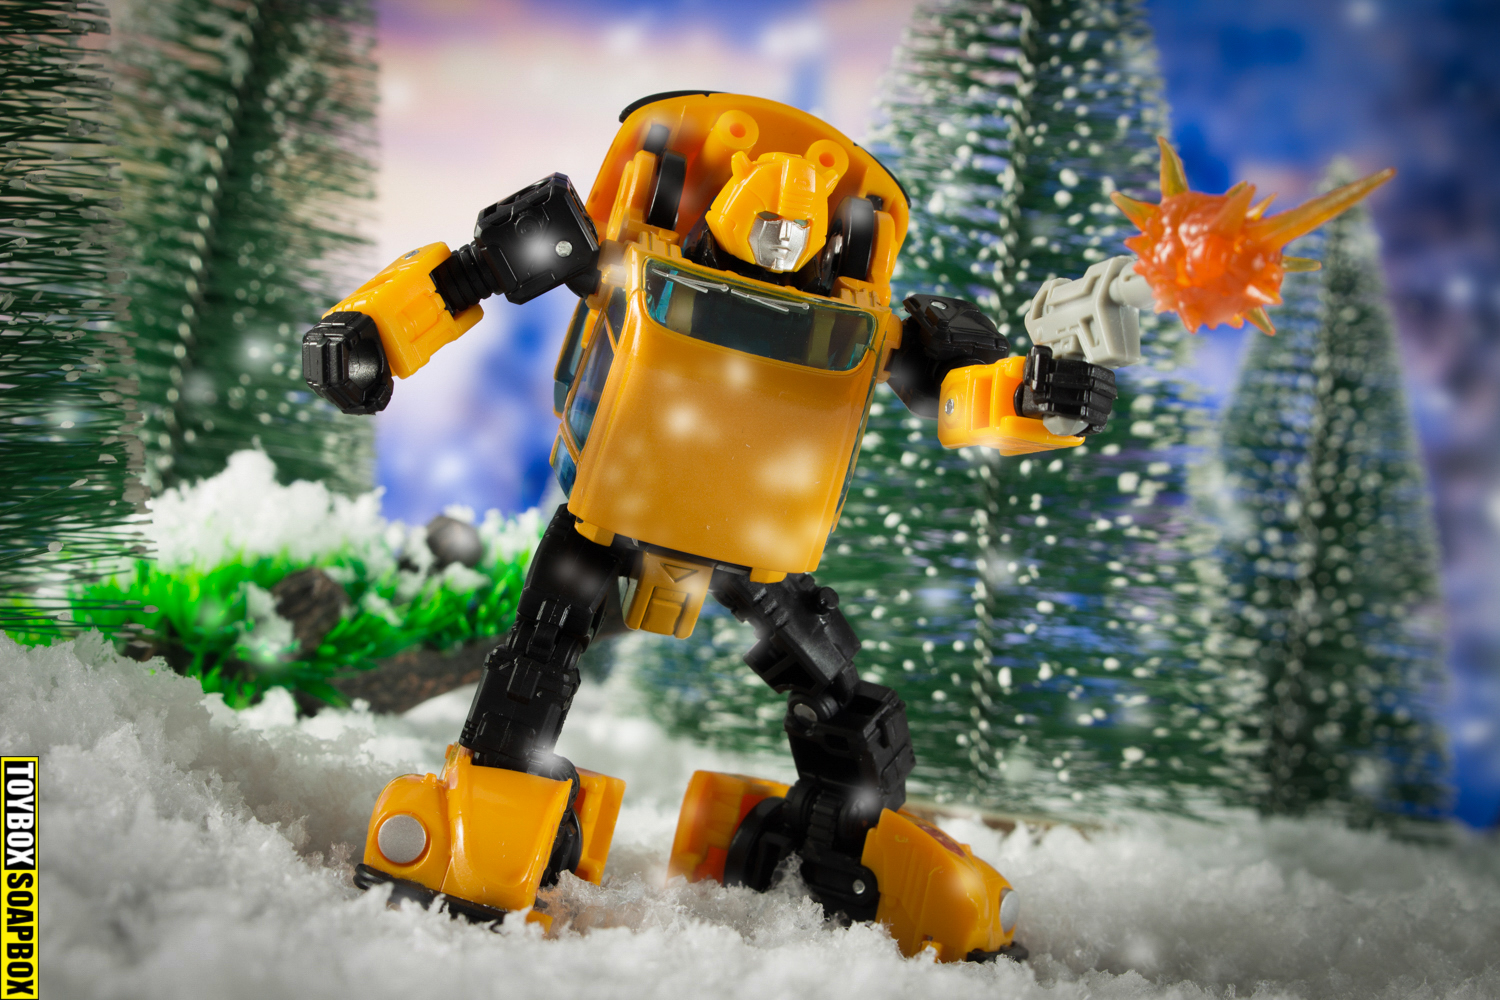 transformers earthrise netflix bumblebee image gallery review